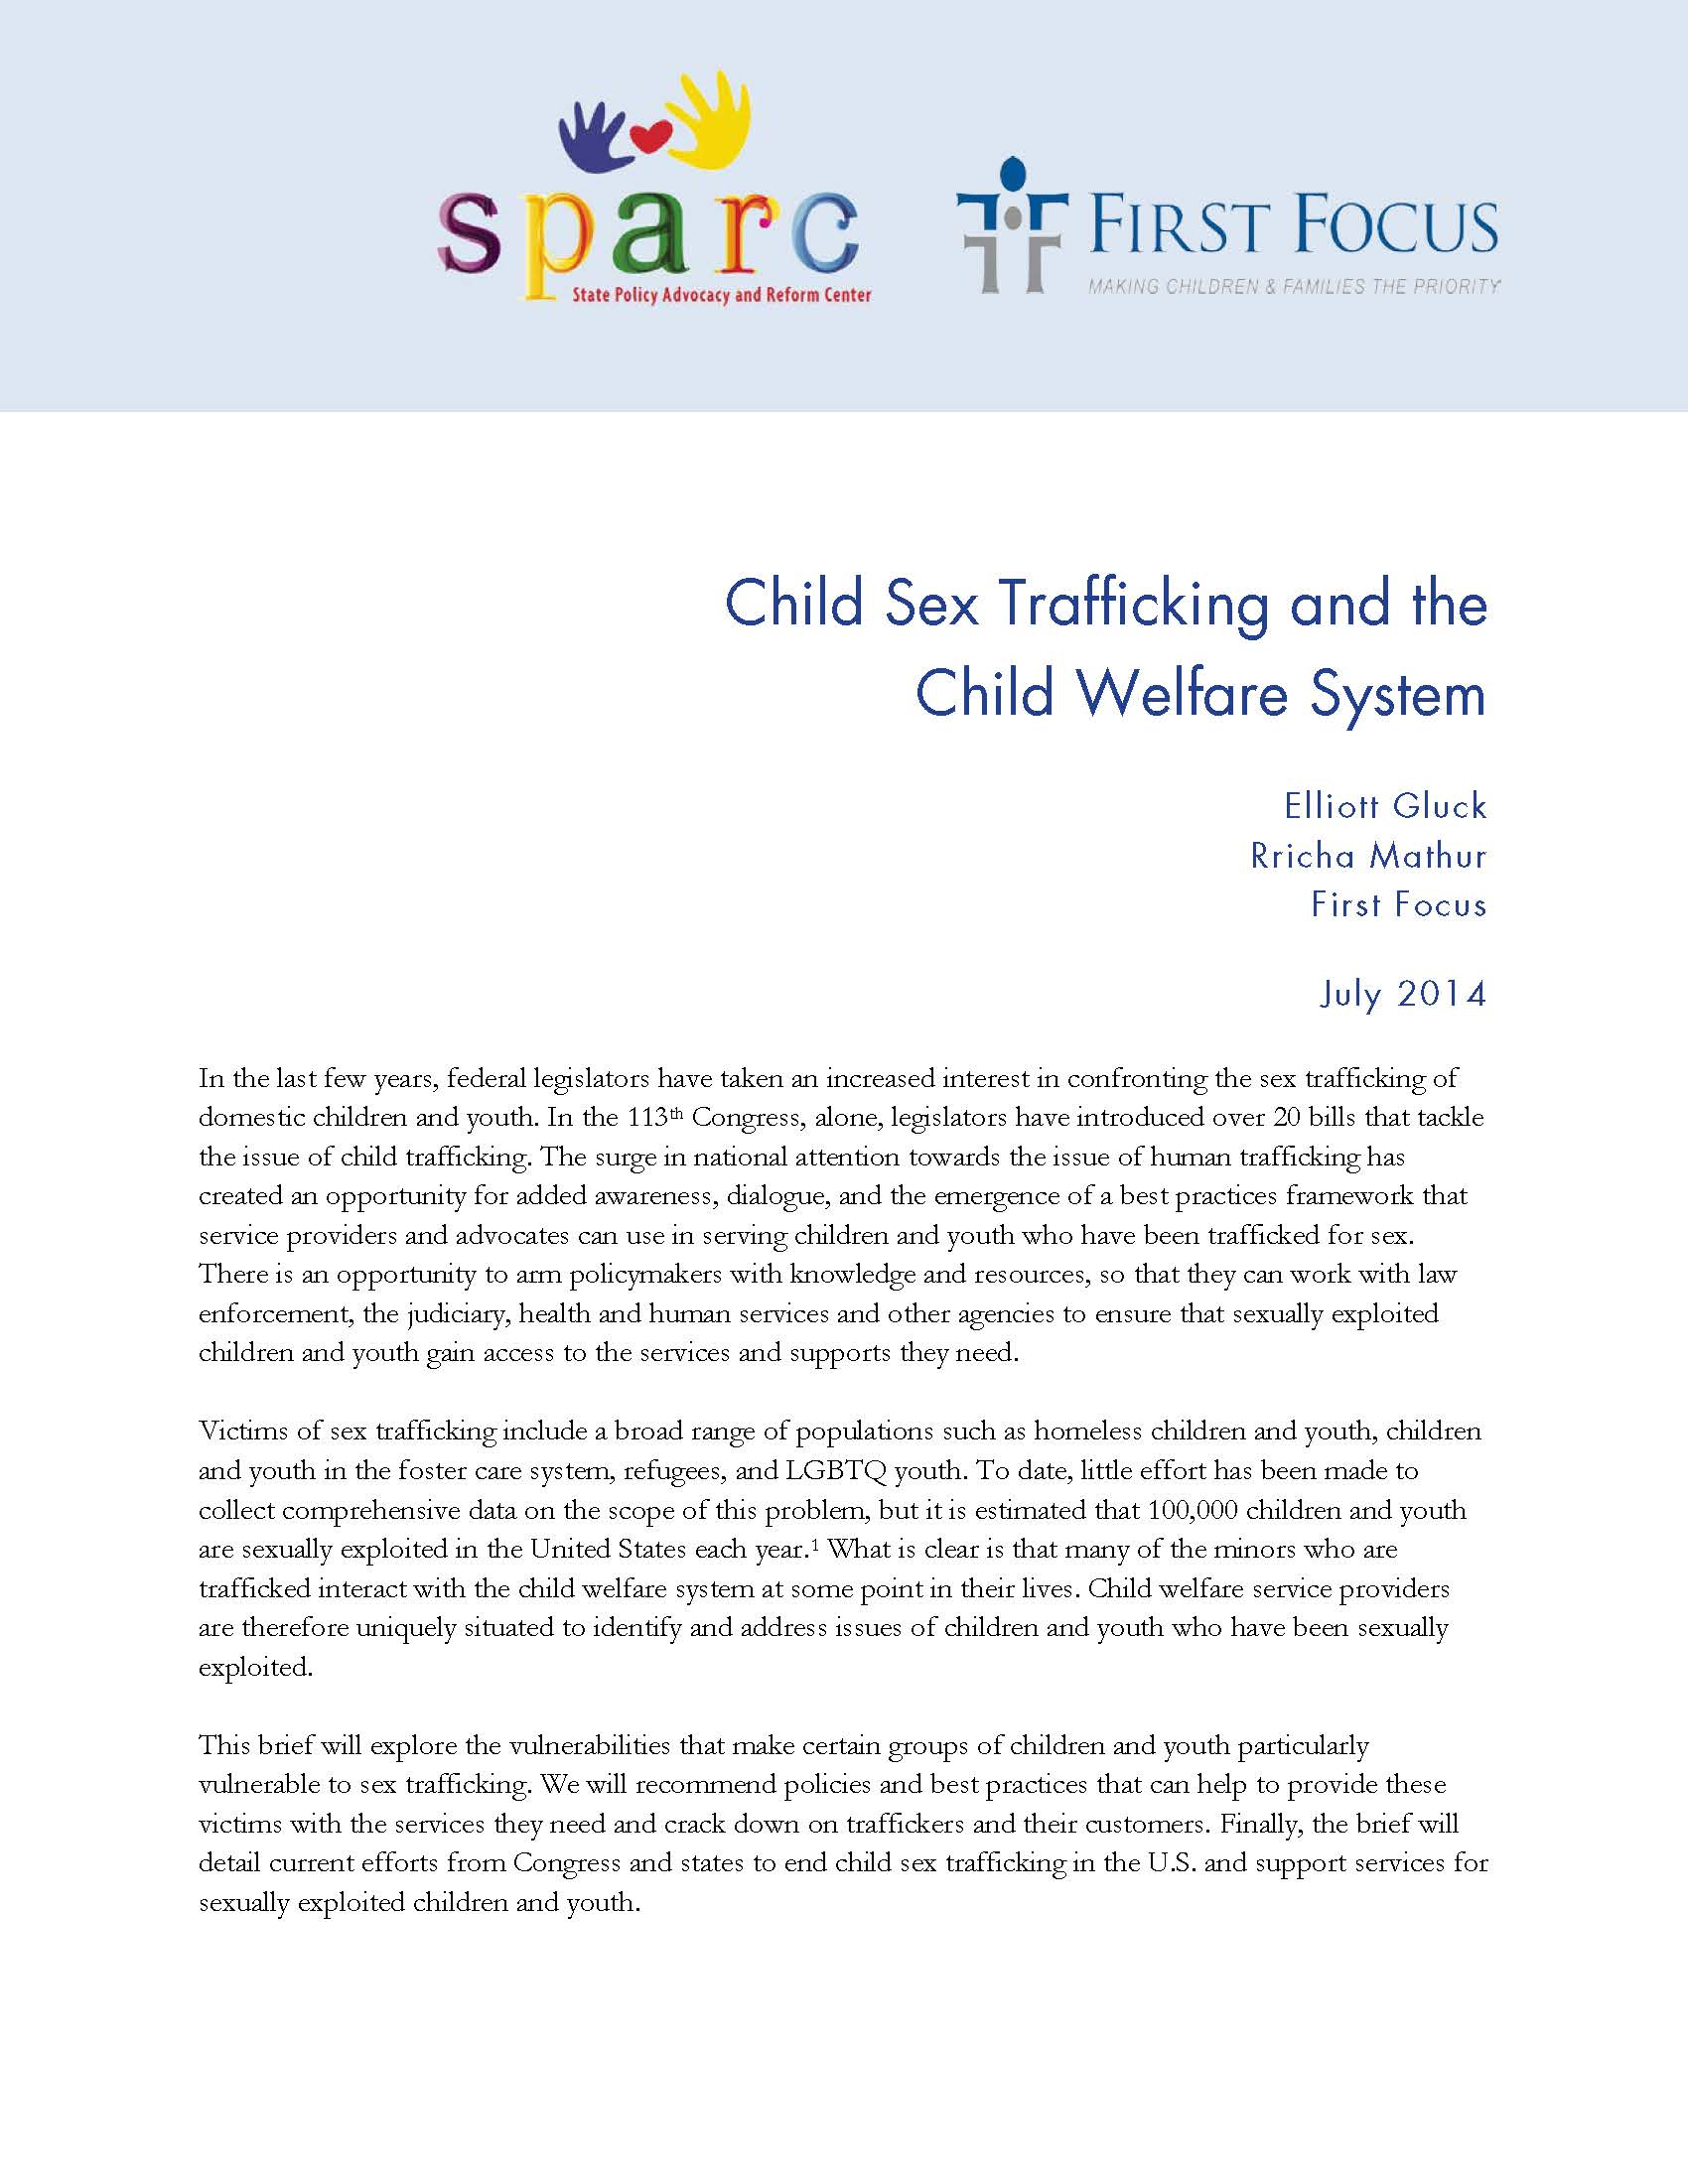 Sex Trafficking and the Child Welfare System